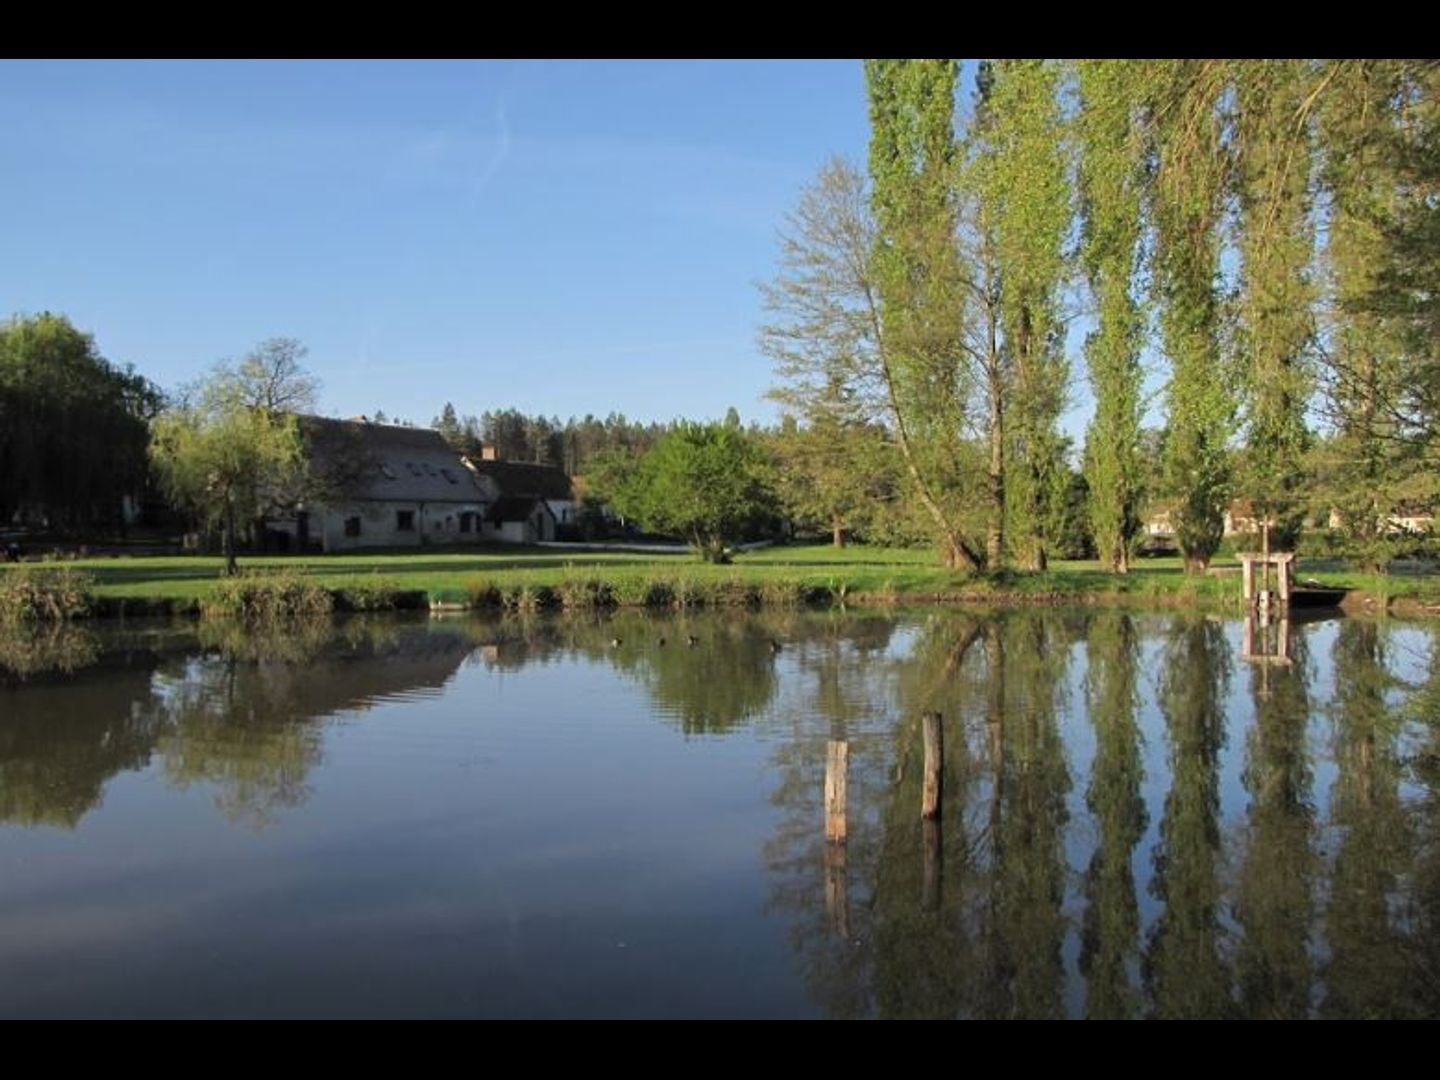 A body of water surrounded by trees at La Grange aux Herbes Chambres d'hôtes Chambord.